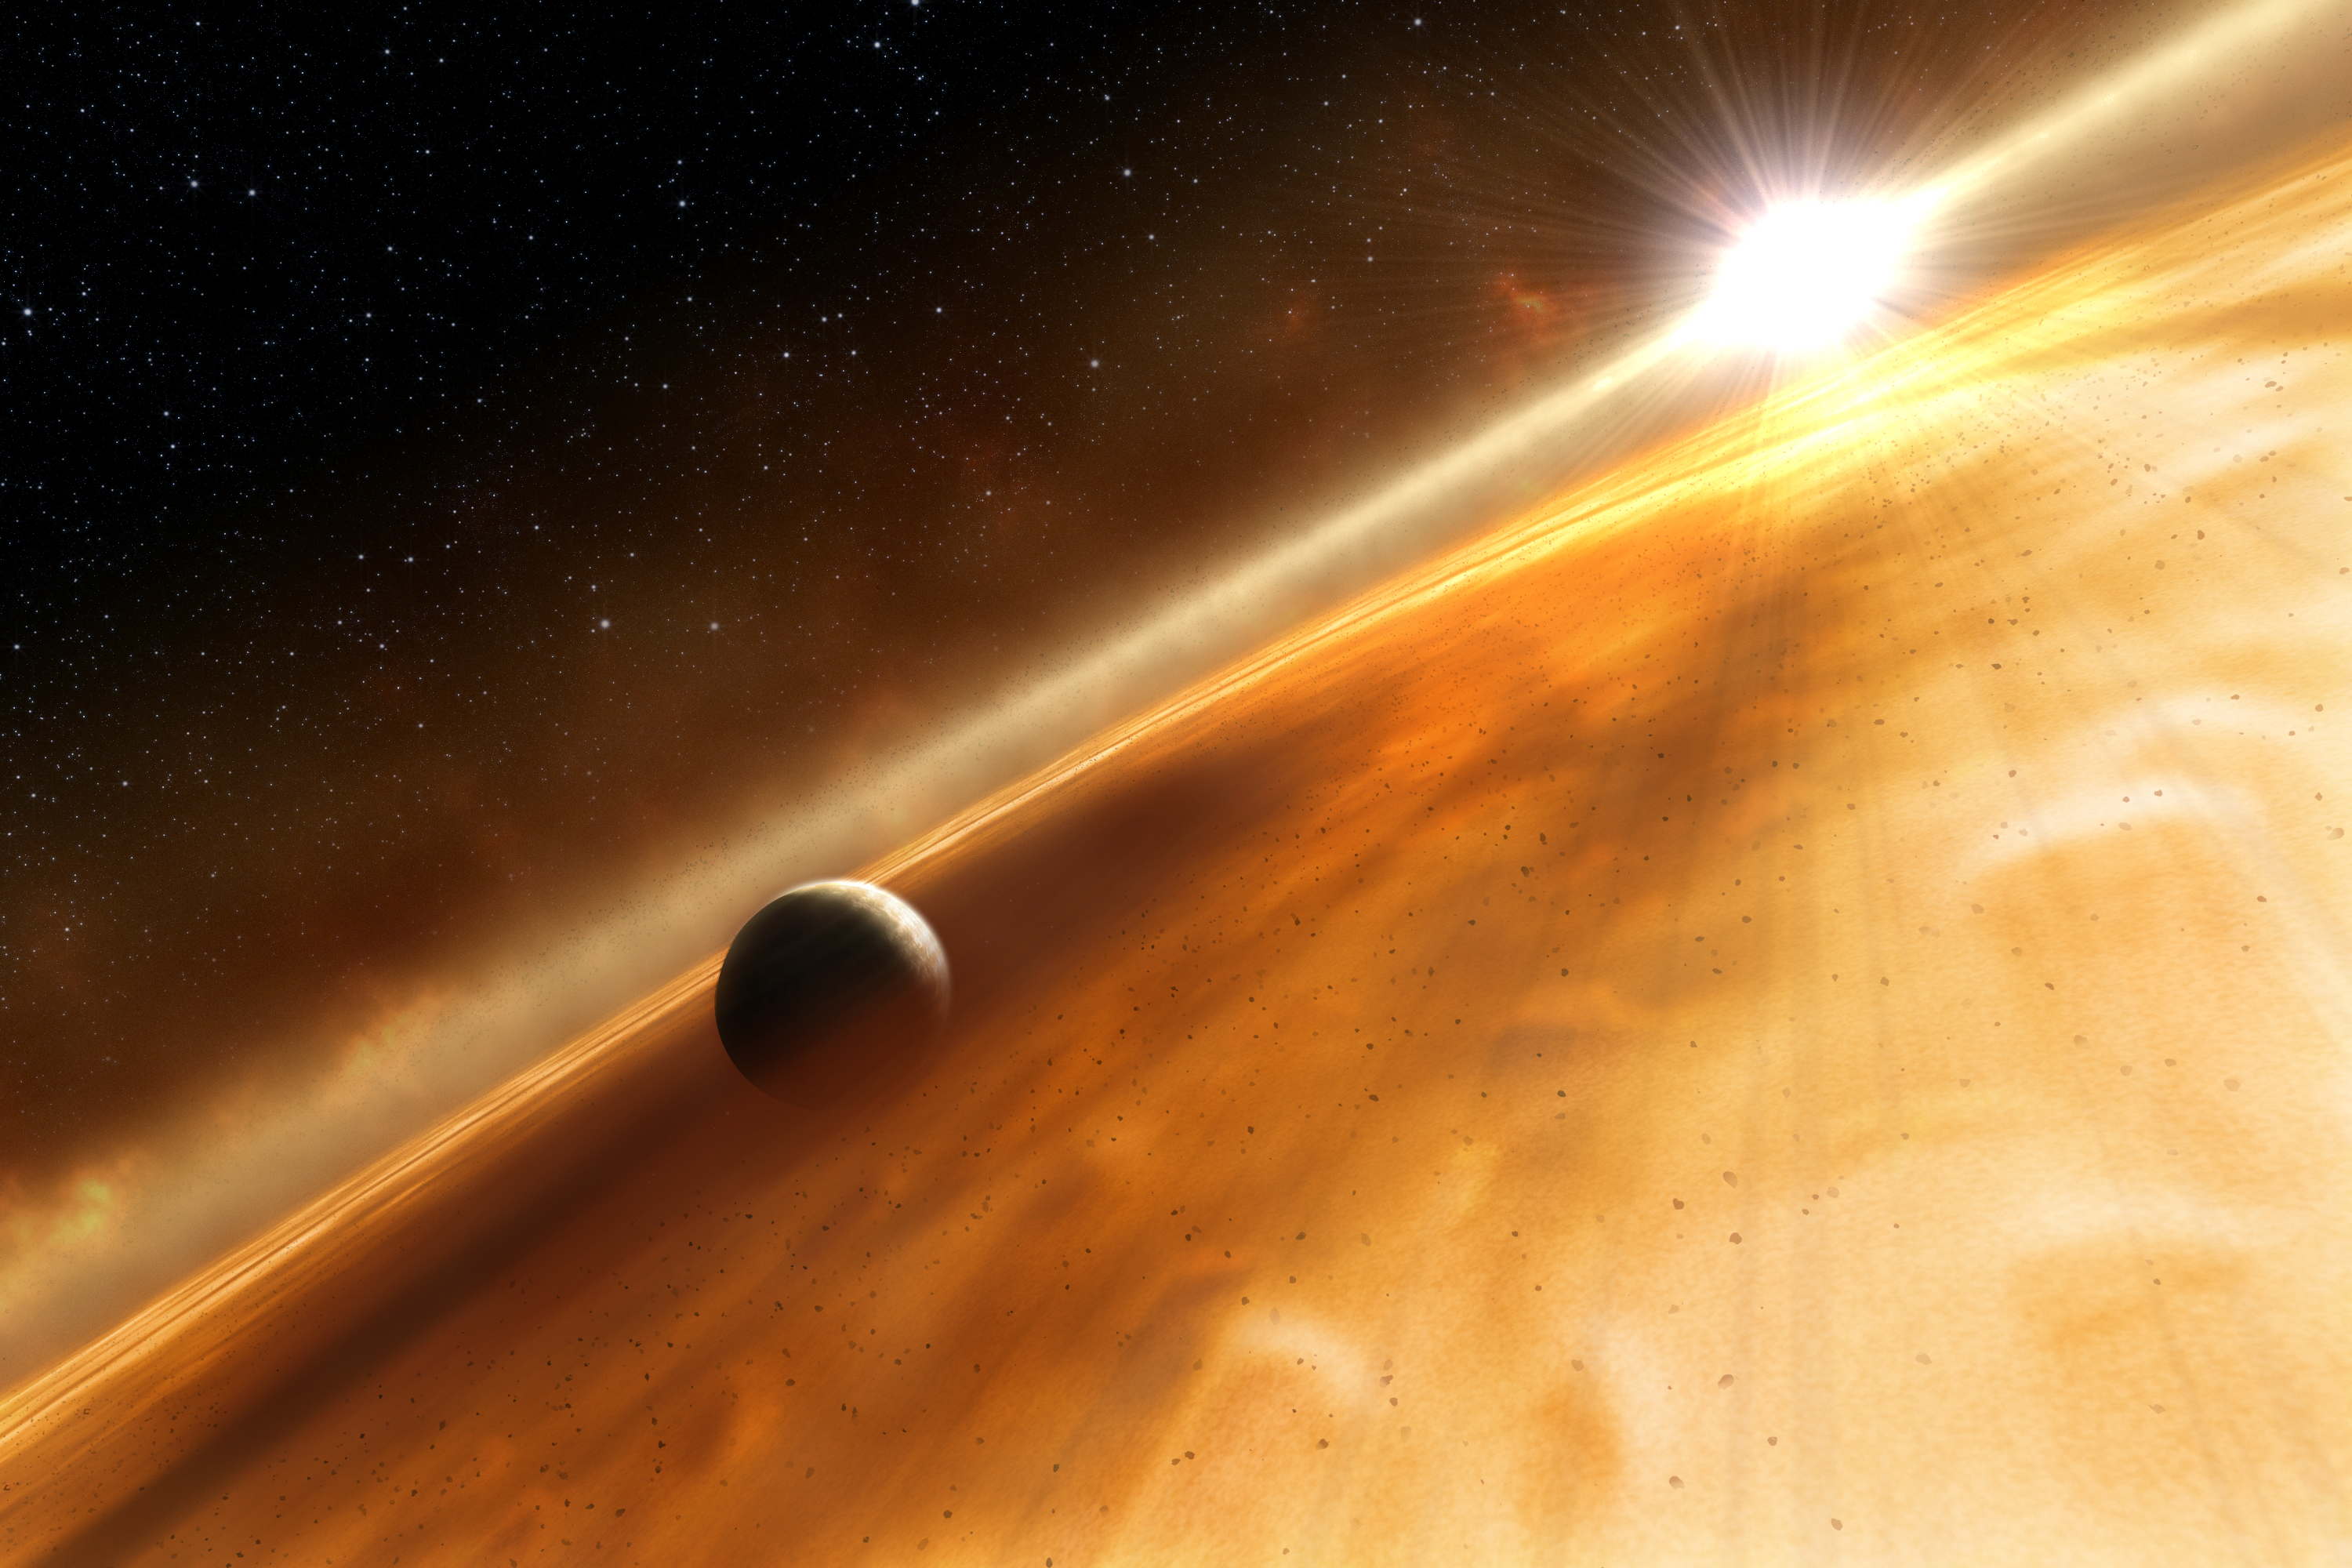 NASA - Hubble Directly Observes a Planet Orbiting Another Star